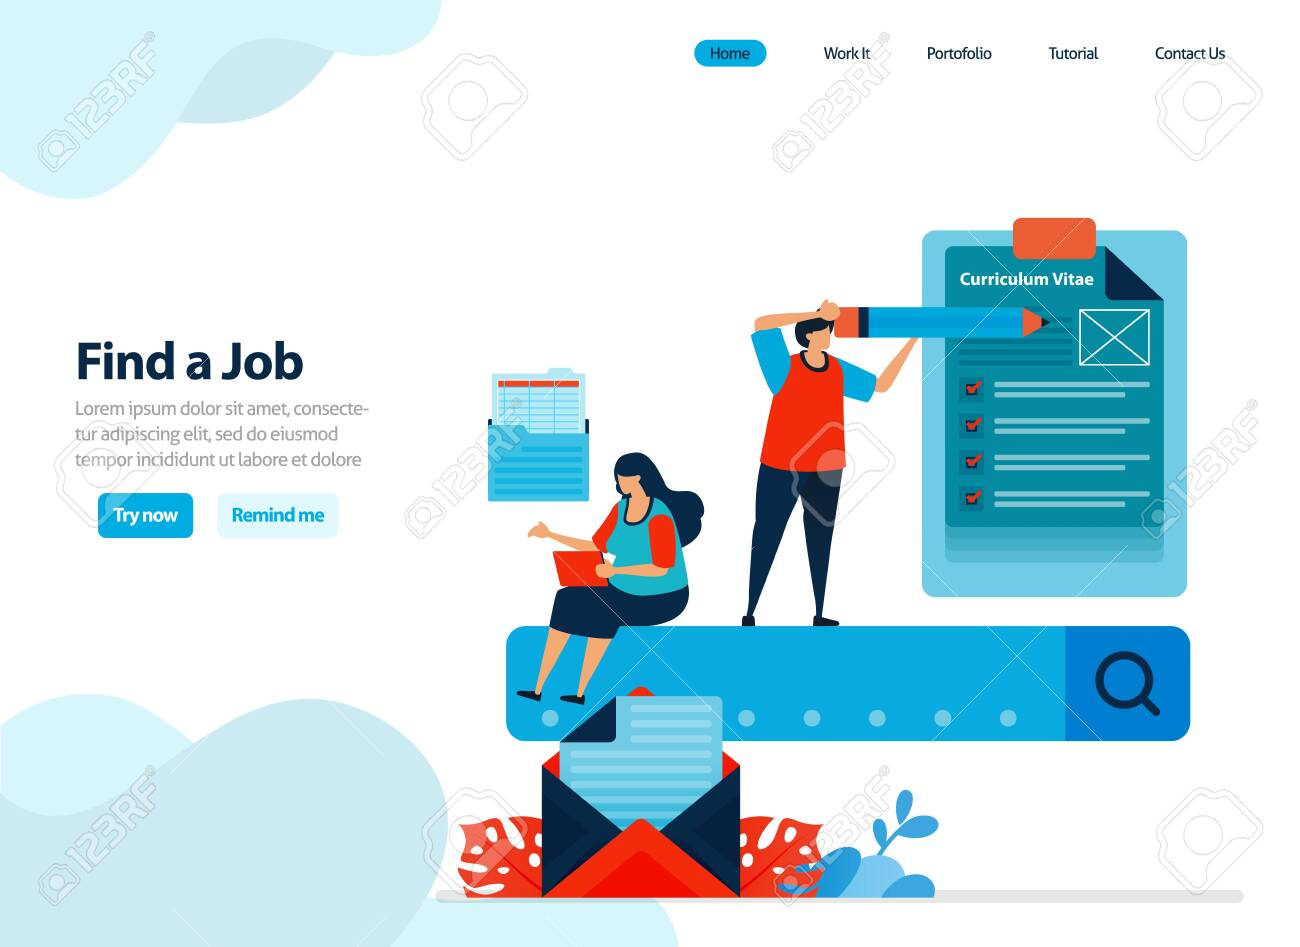 Website Design Of Looking For Work And Finding Employees Jobs Royalty Free Cliparts Vectors And Stock Illustration Image 141953018